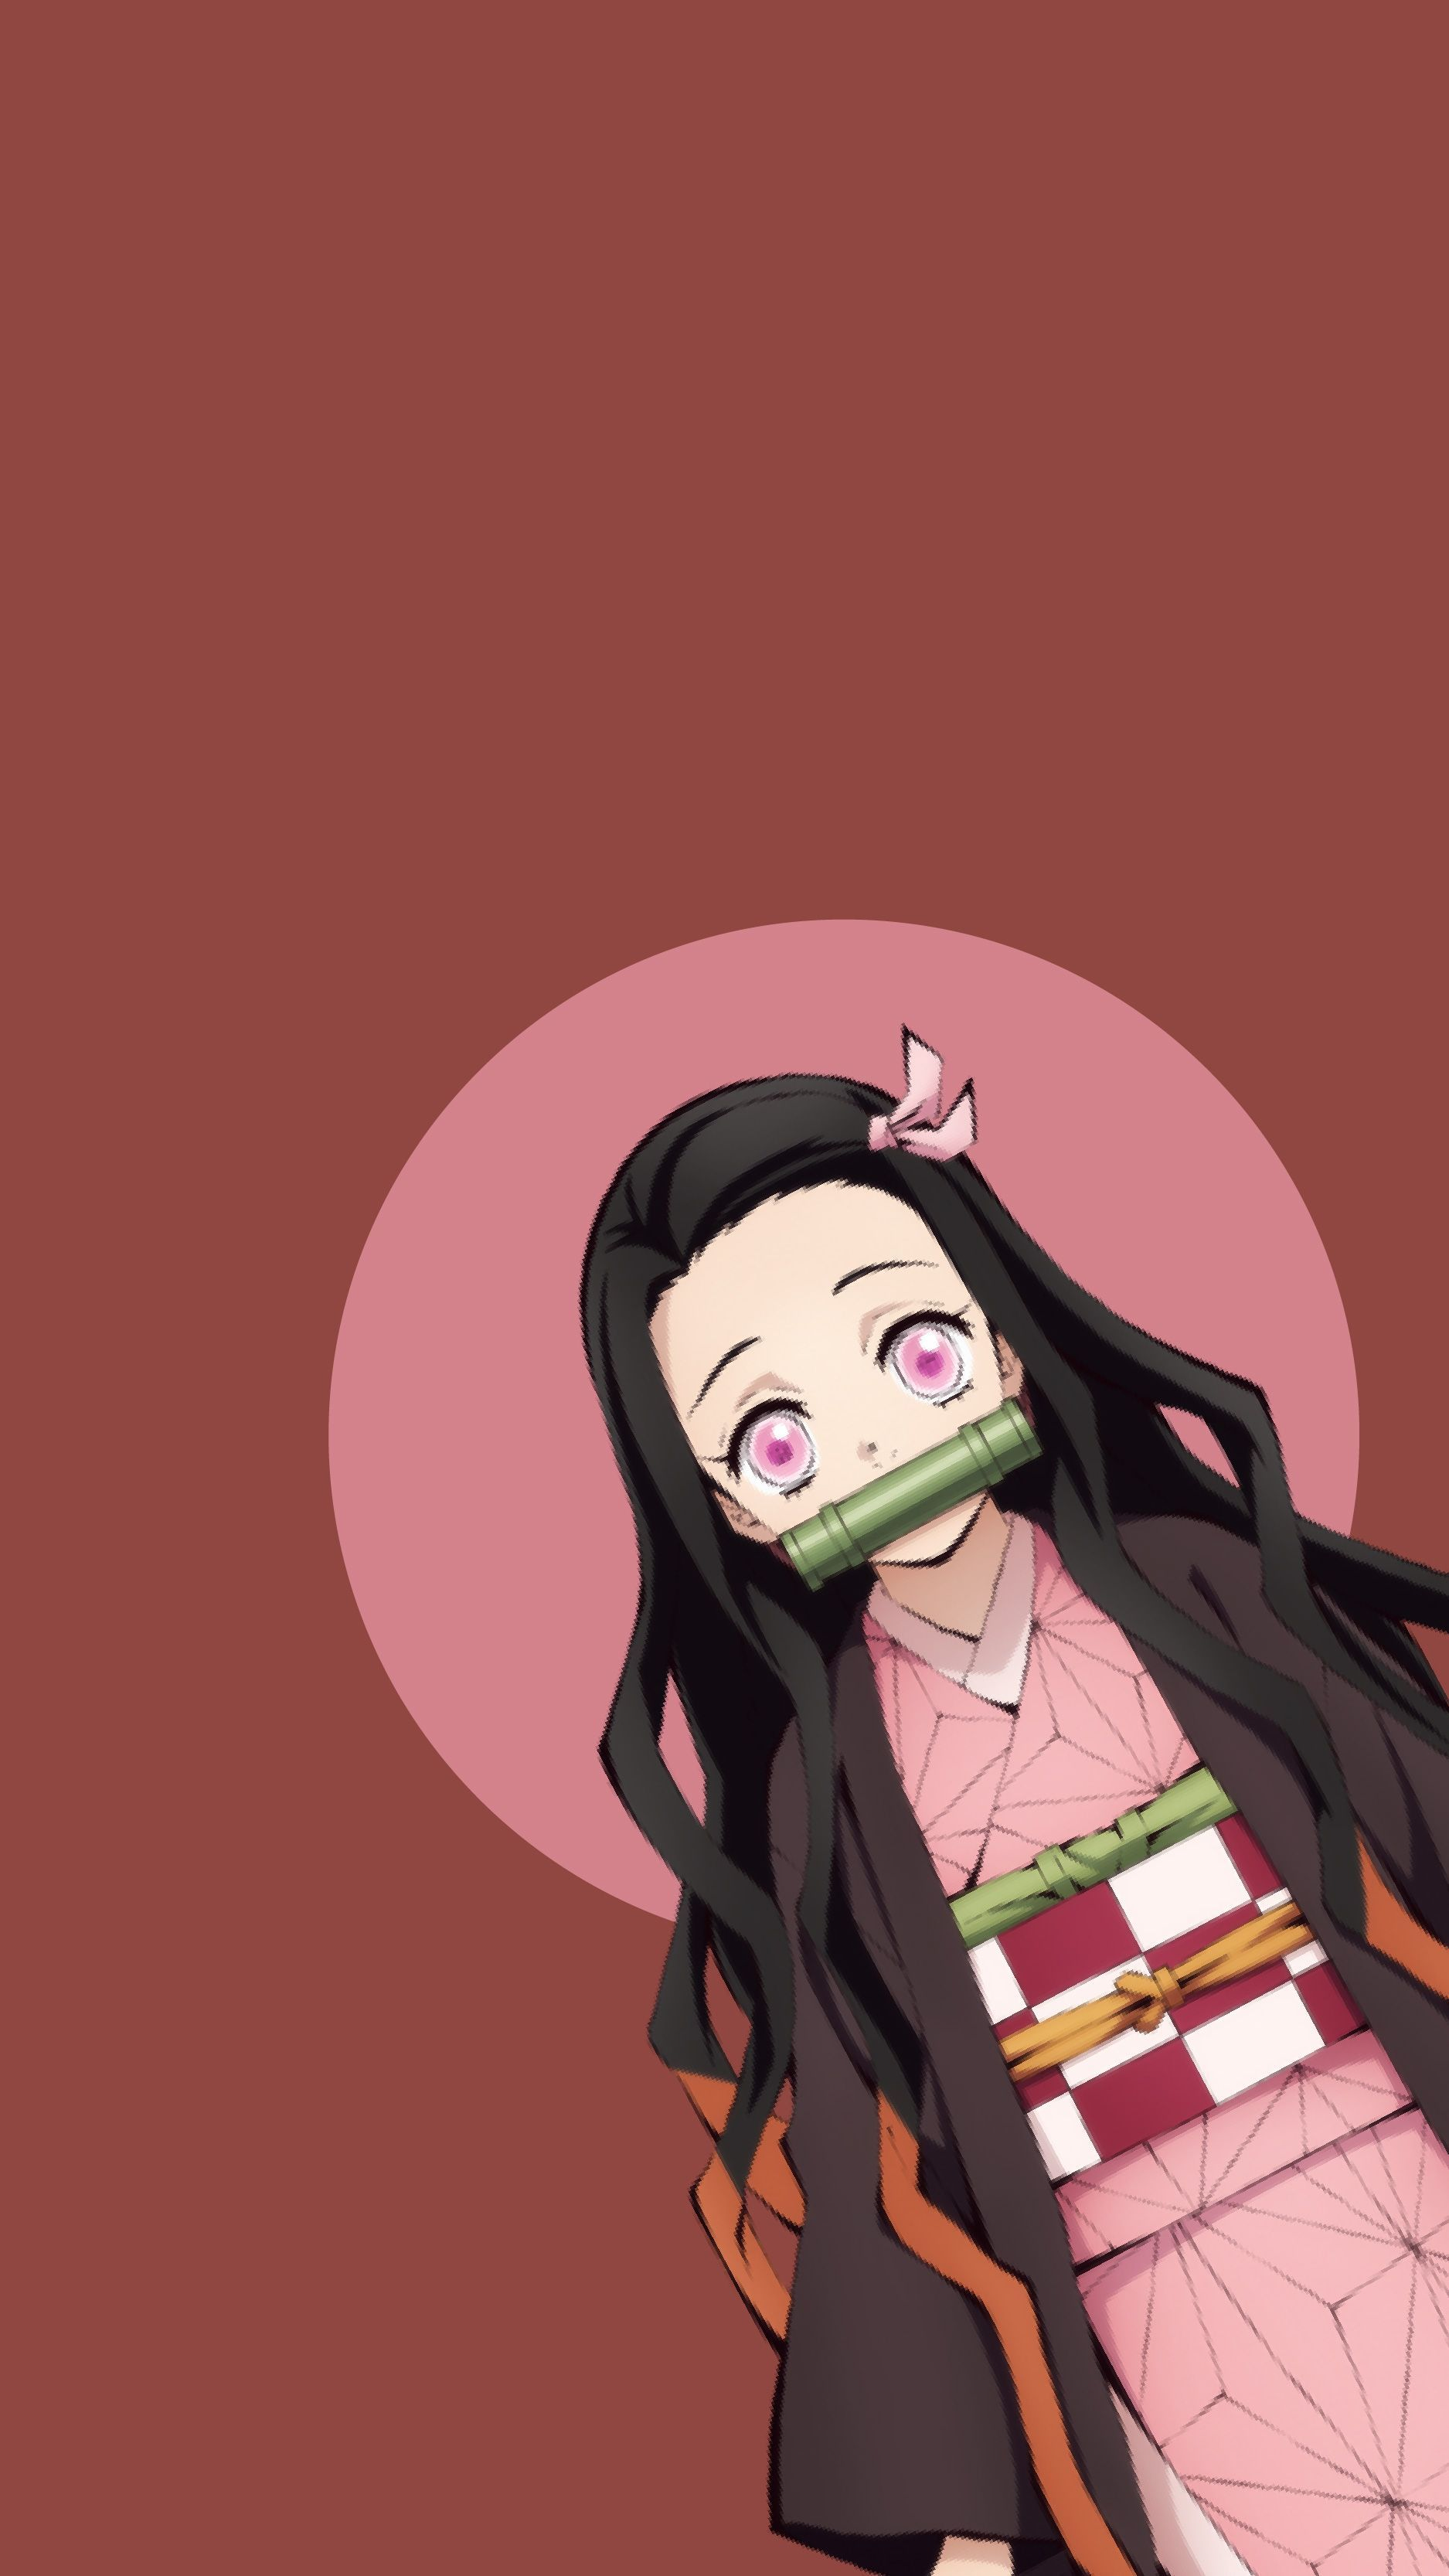 Demon Slayer Nezuko Phone Wallpaper Phonewallpaperquotes Demon Slayer Nezuko Phone Wallpaper Anime Telefon D Cute Anime Wallpaper Anime Wallpaper Anime Demon